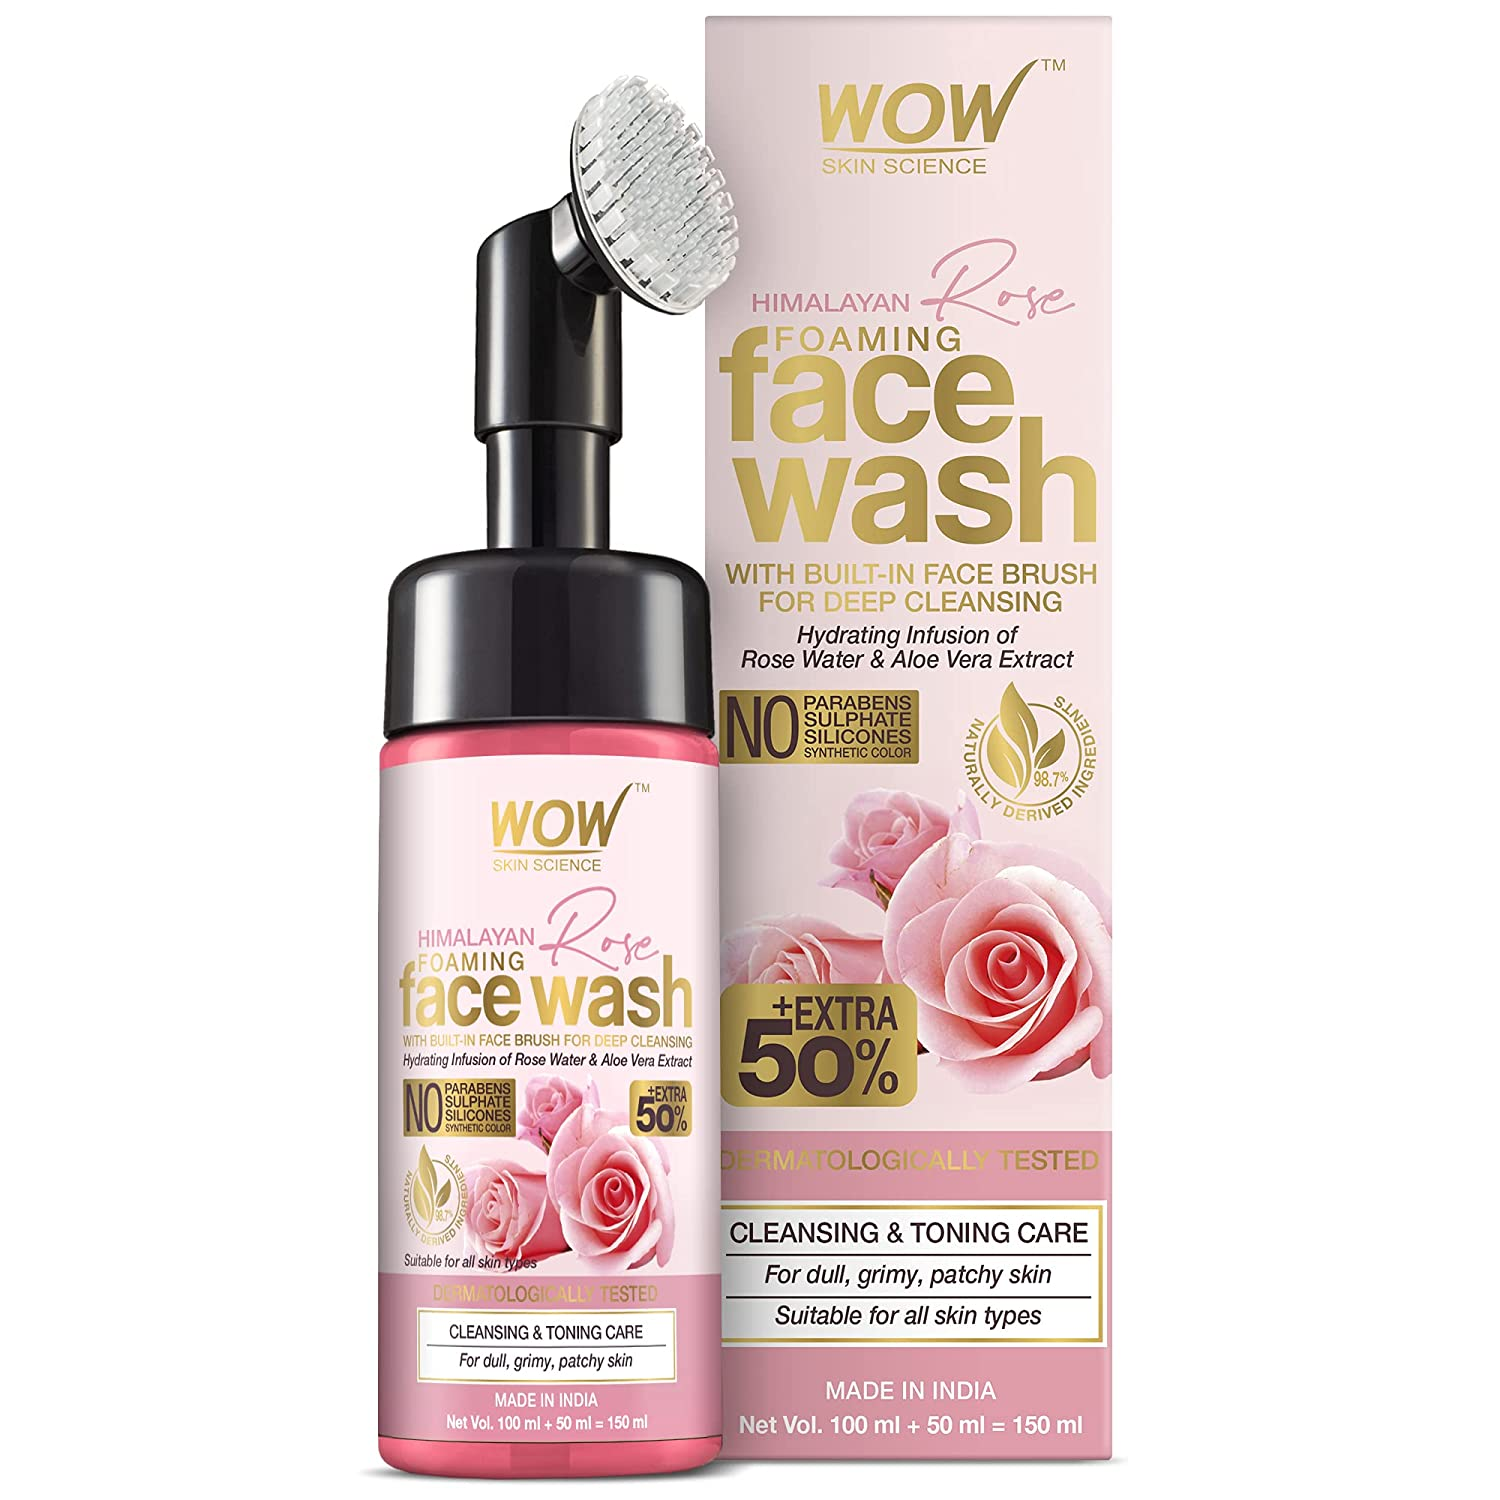 WOW Skin Science Himalayan Rose Foaming Face Wash with Built-in Brush - contains Rose Water & Aloe Vera Extract - for Cleansing & Toning - No Parabens, Sulphate, Silicones & Synthetic Color - 100mL